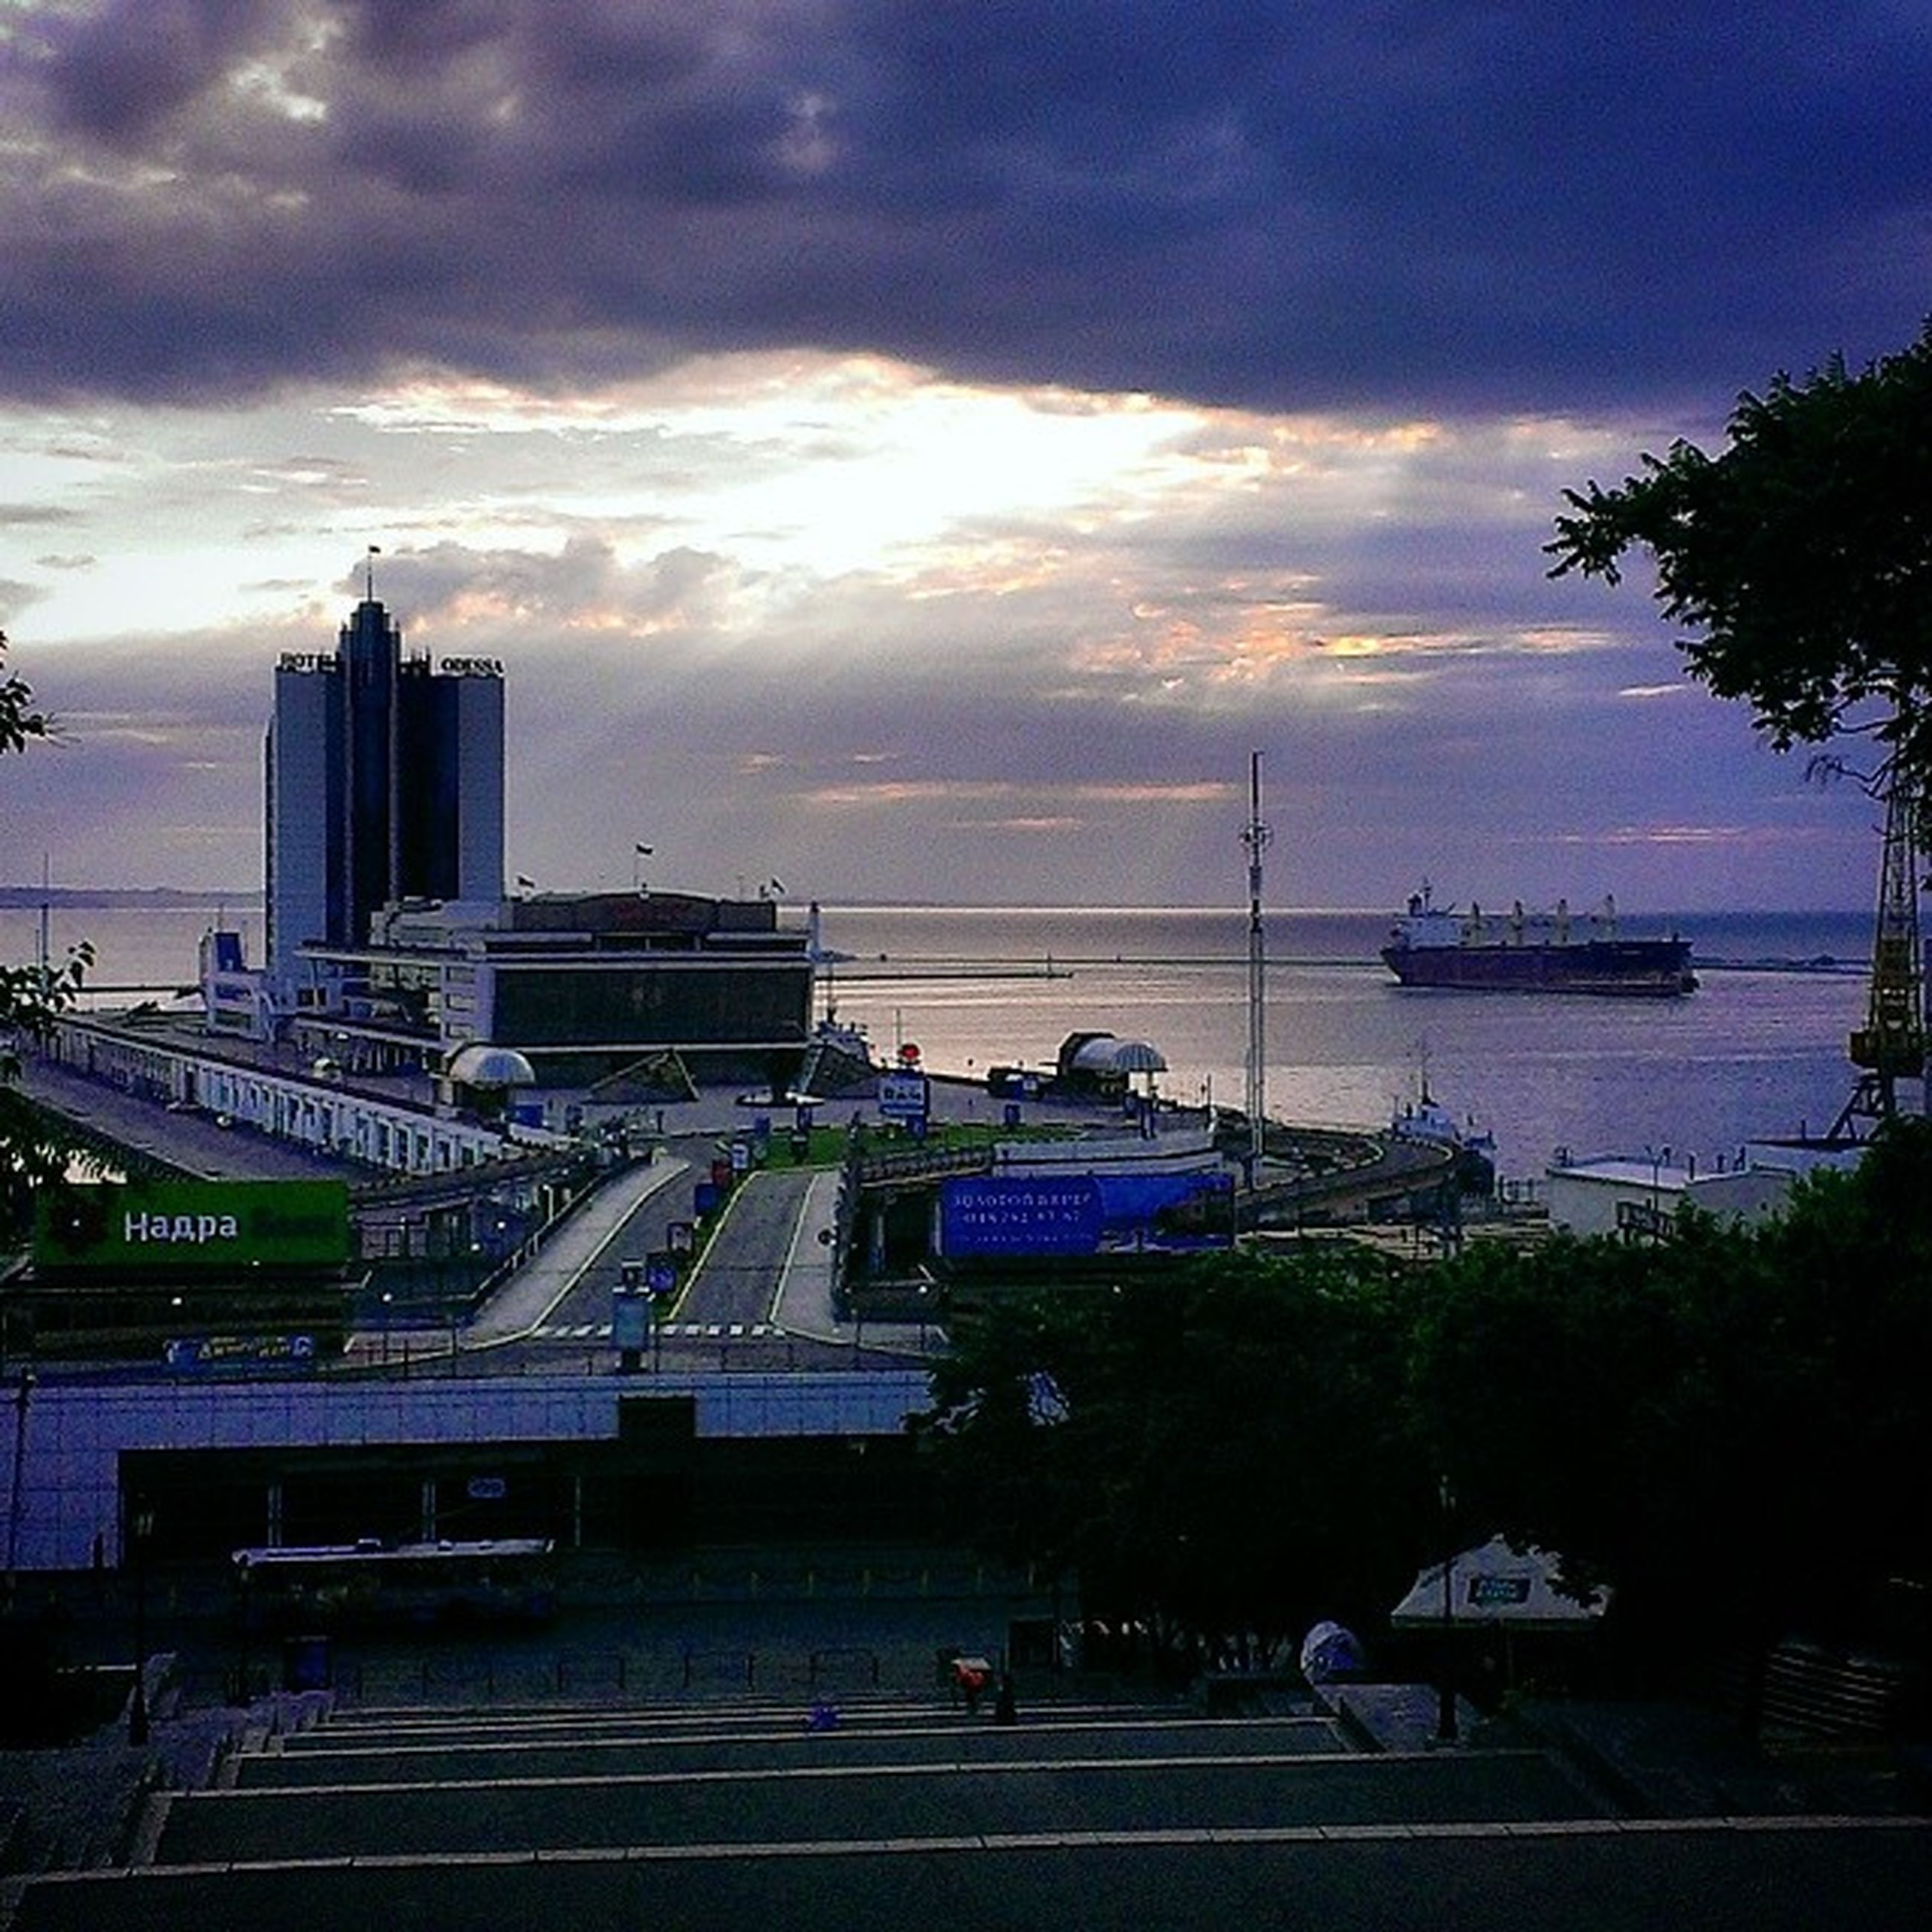 sky, cloud - sky, water, sunset, transportation, nautical vessel, cloudy, mode of transport, sea, moored, cloud, built structure, harbor, city, building exterior, boat, architecture, tree, nature, high angle view